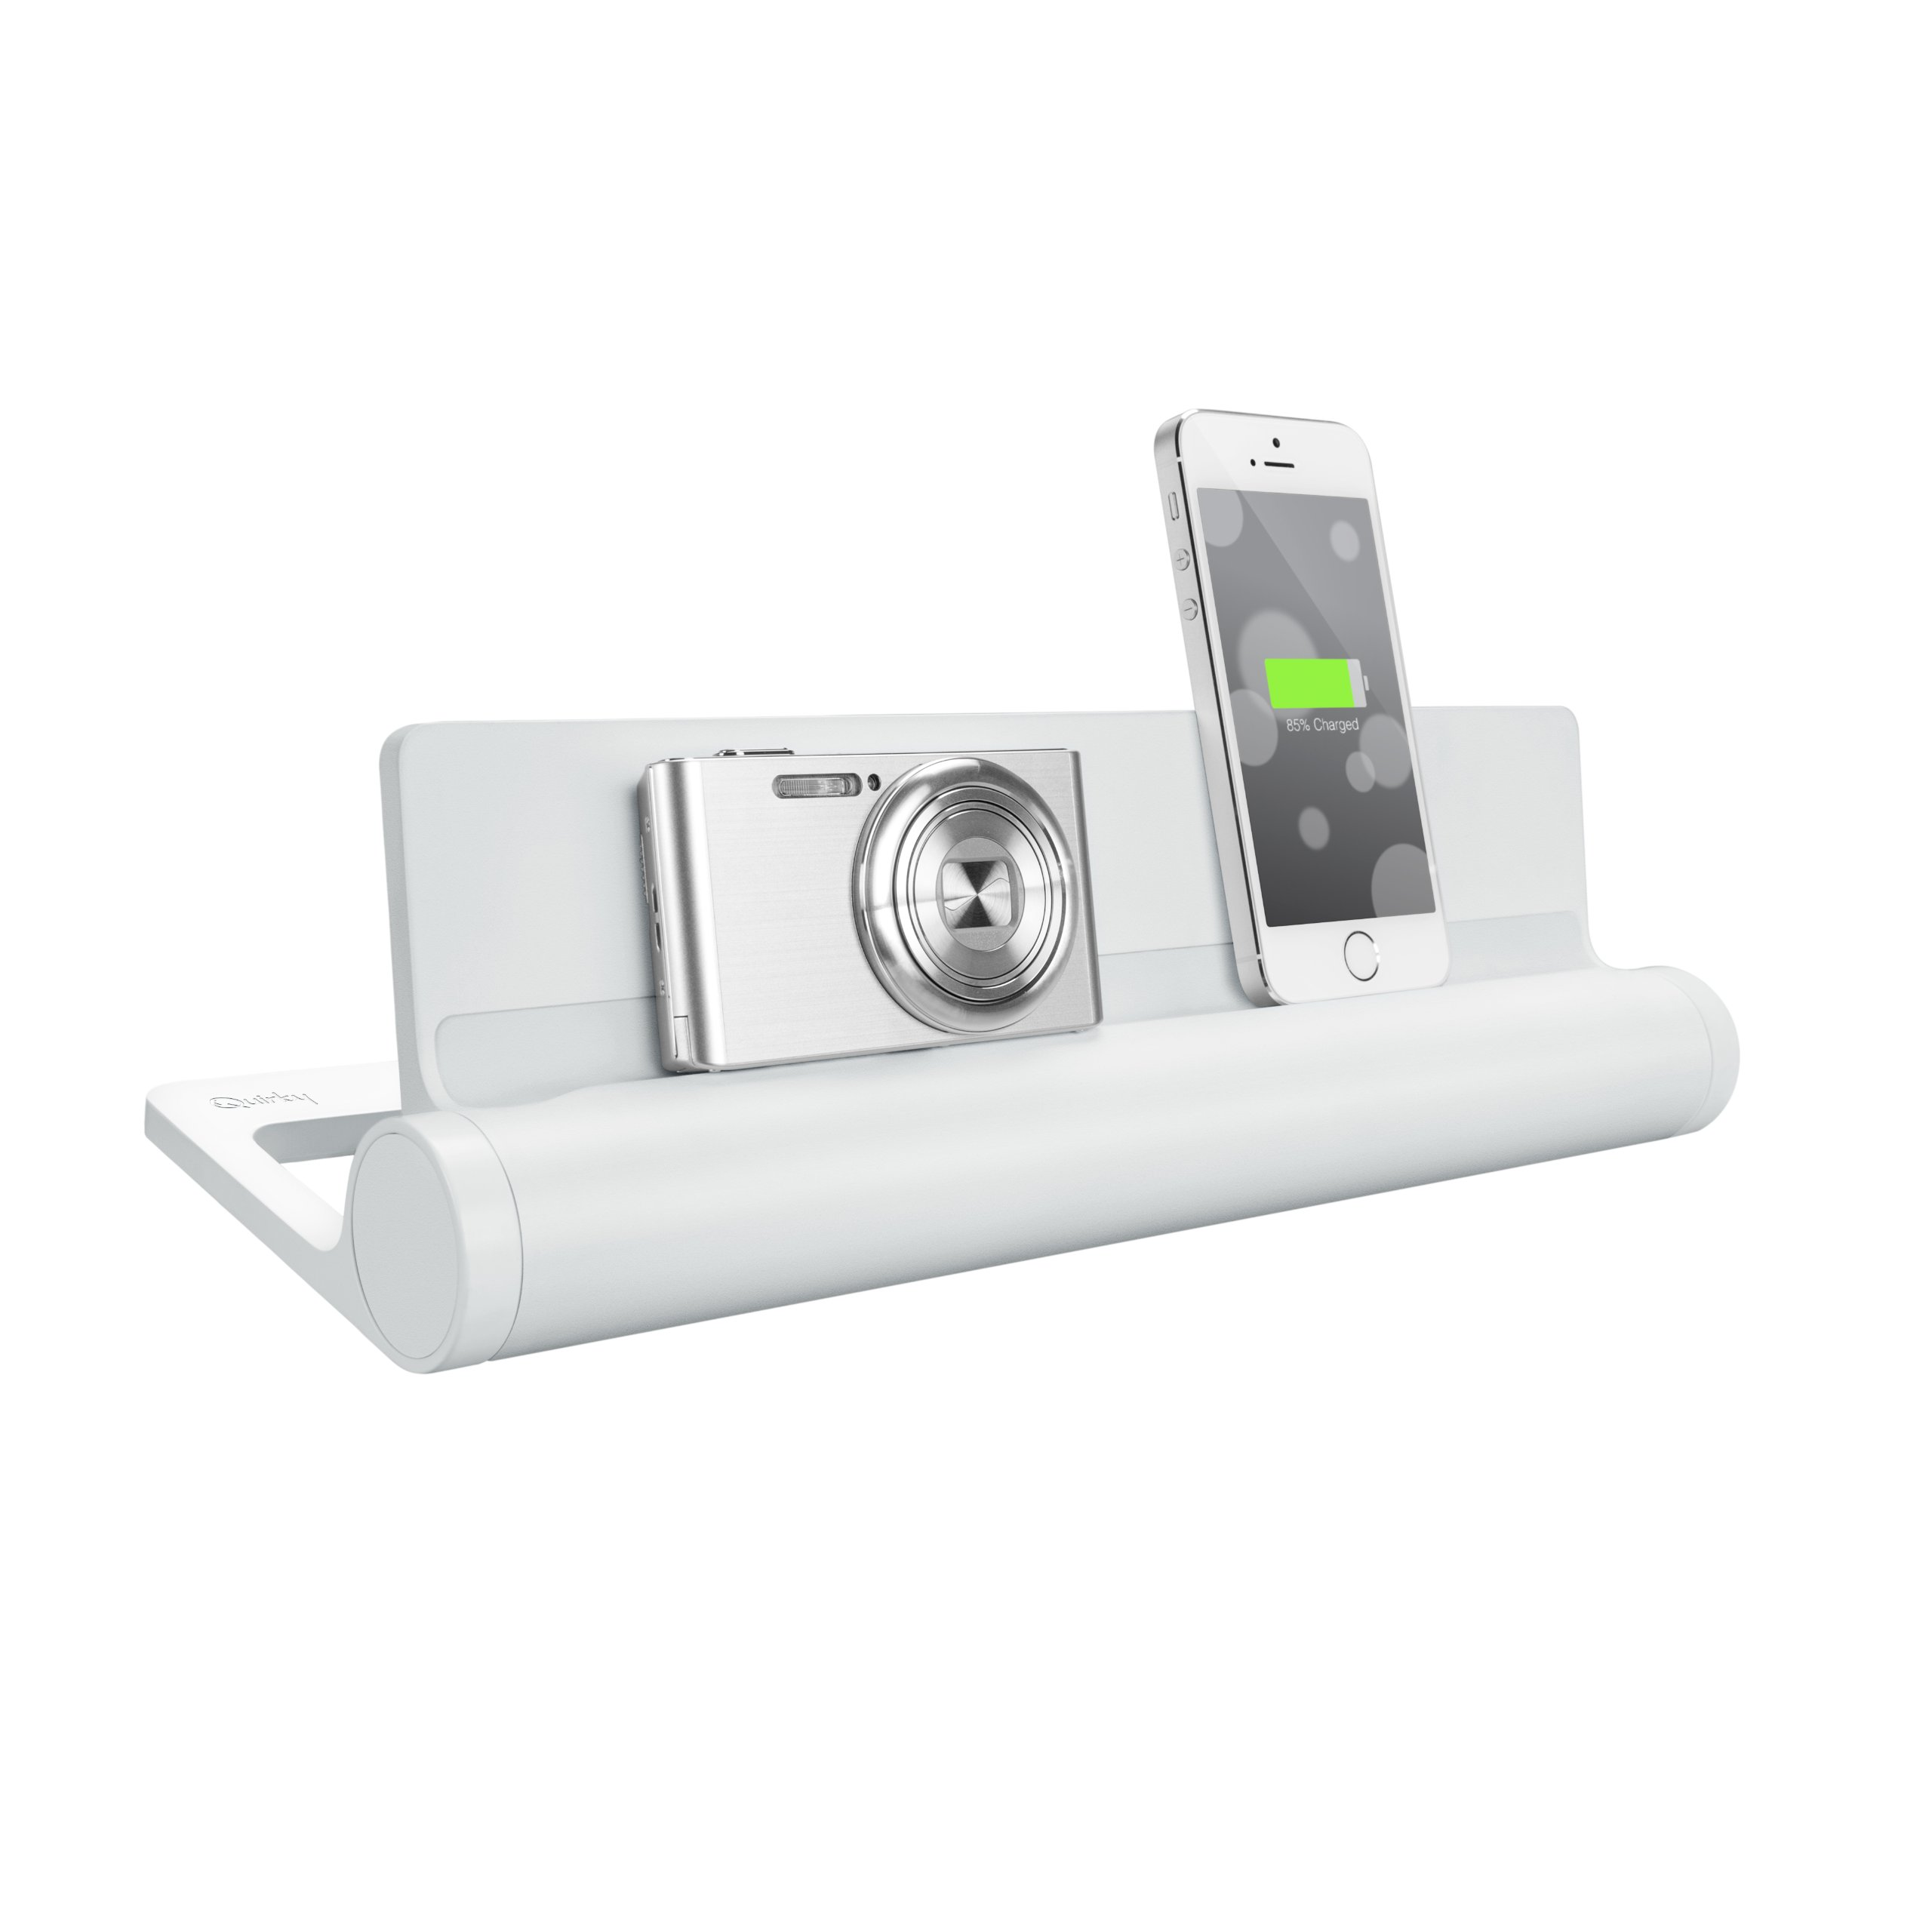 Quirky PCVG3-WH01 Converge Universal USB Docking Station, White